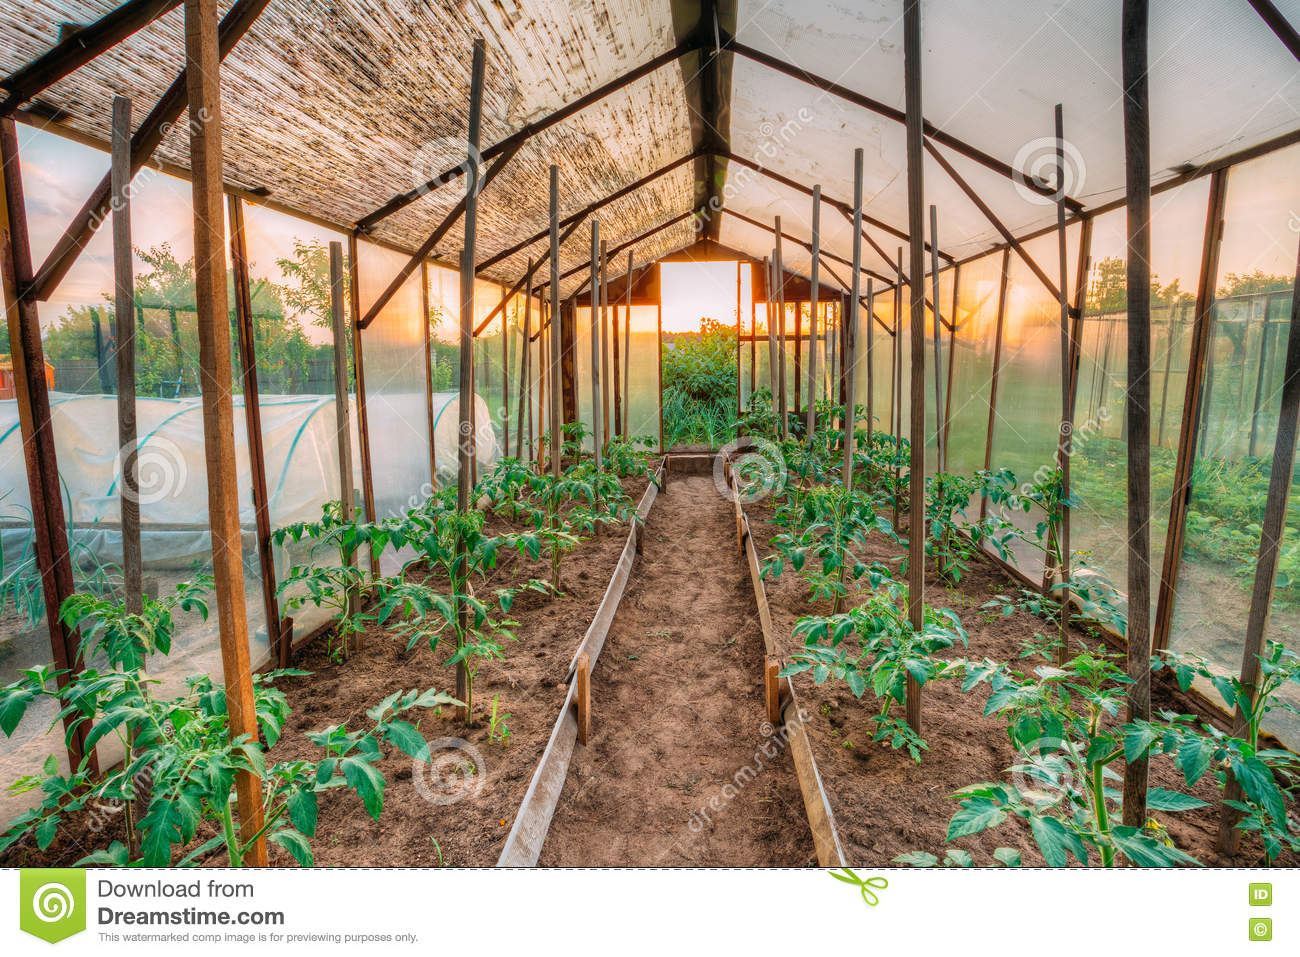 Tomatoes Vegetables Growing In Raised Beds In Vegetable Garden A ...